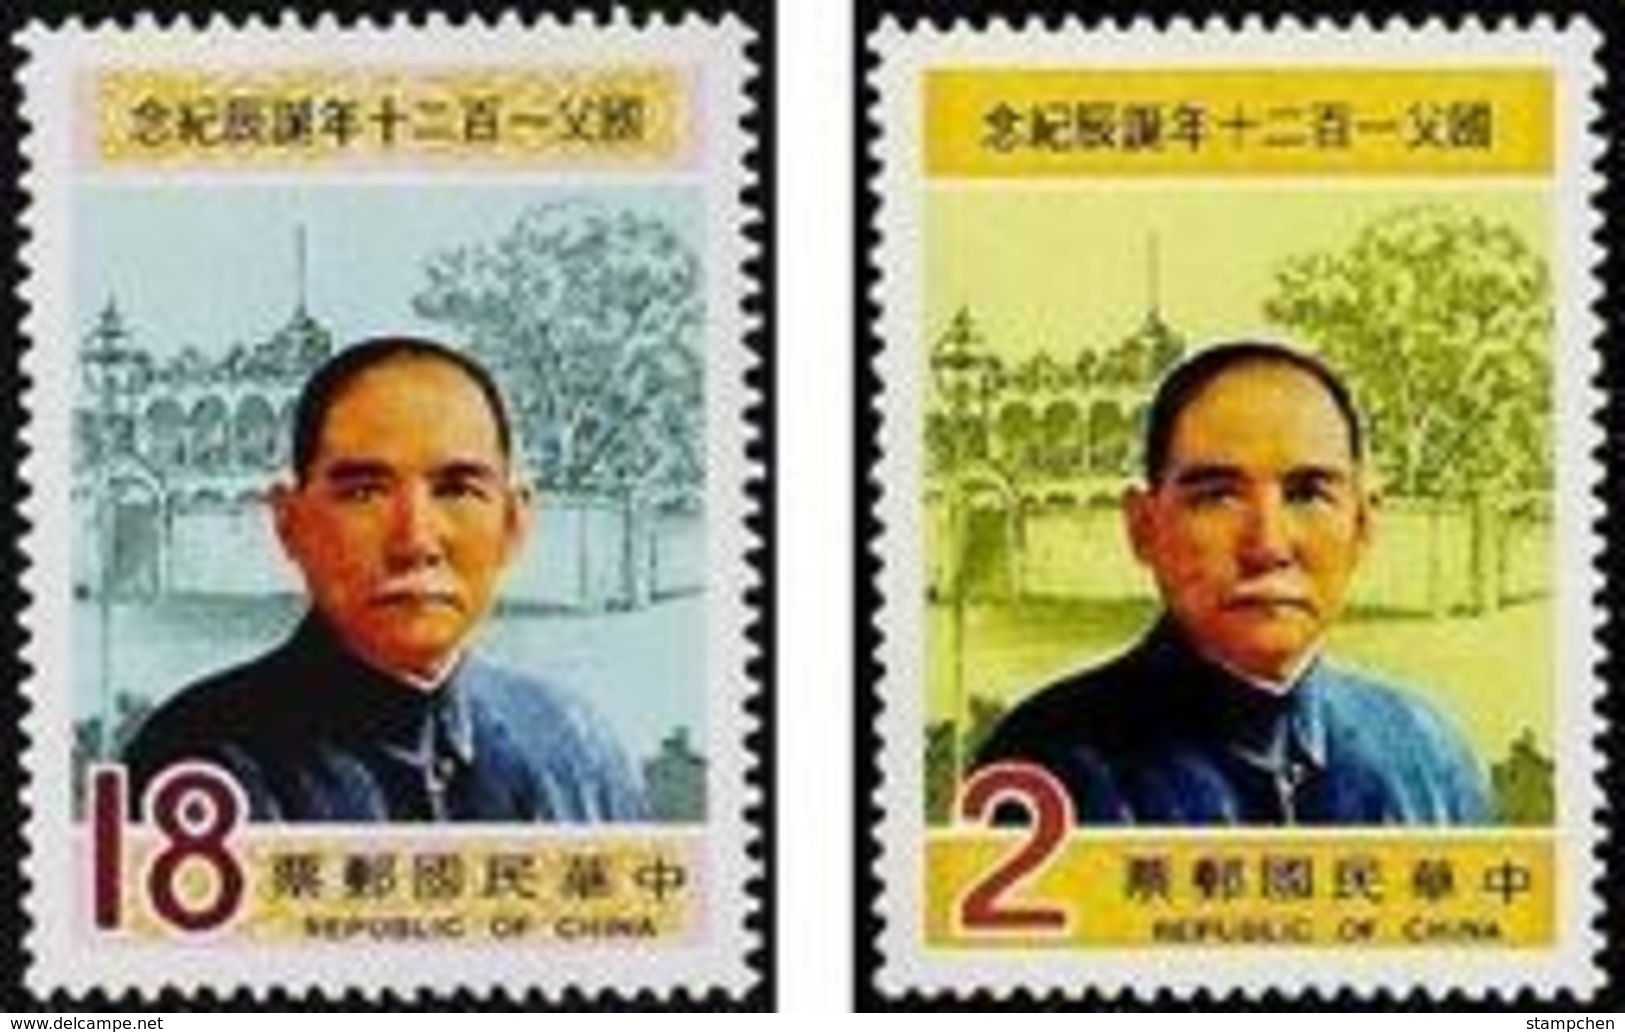 1985 120th Birthday Of Dr. Sun Yat-sen Stamps SYS Architecture - Holidays & Tourism